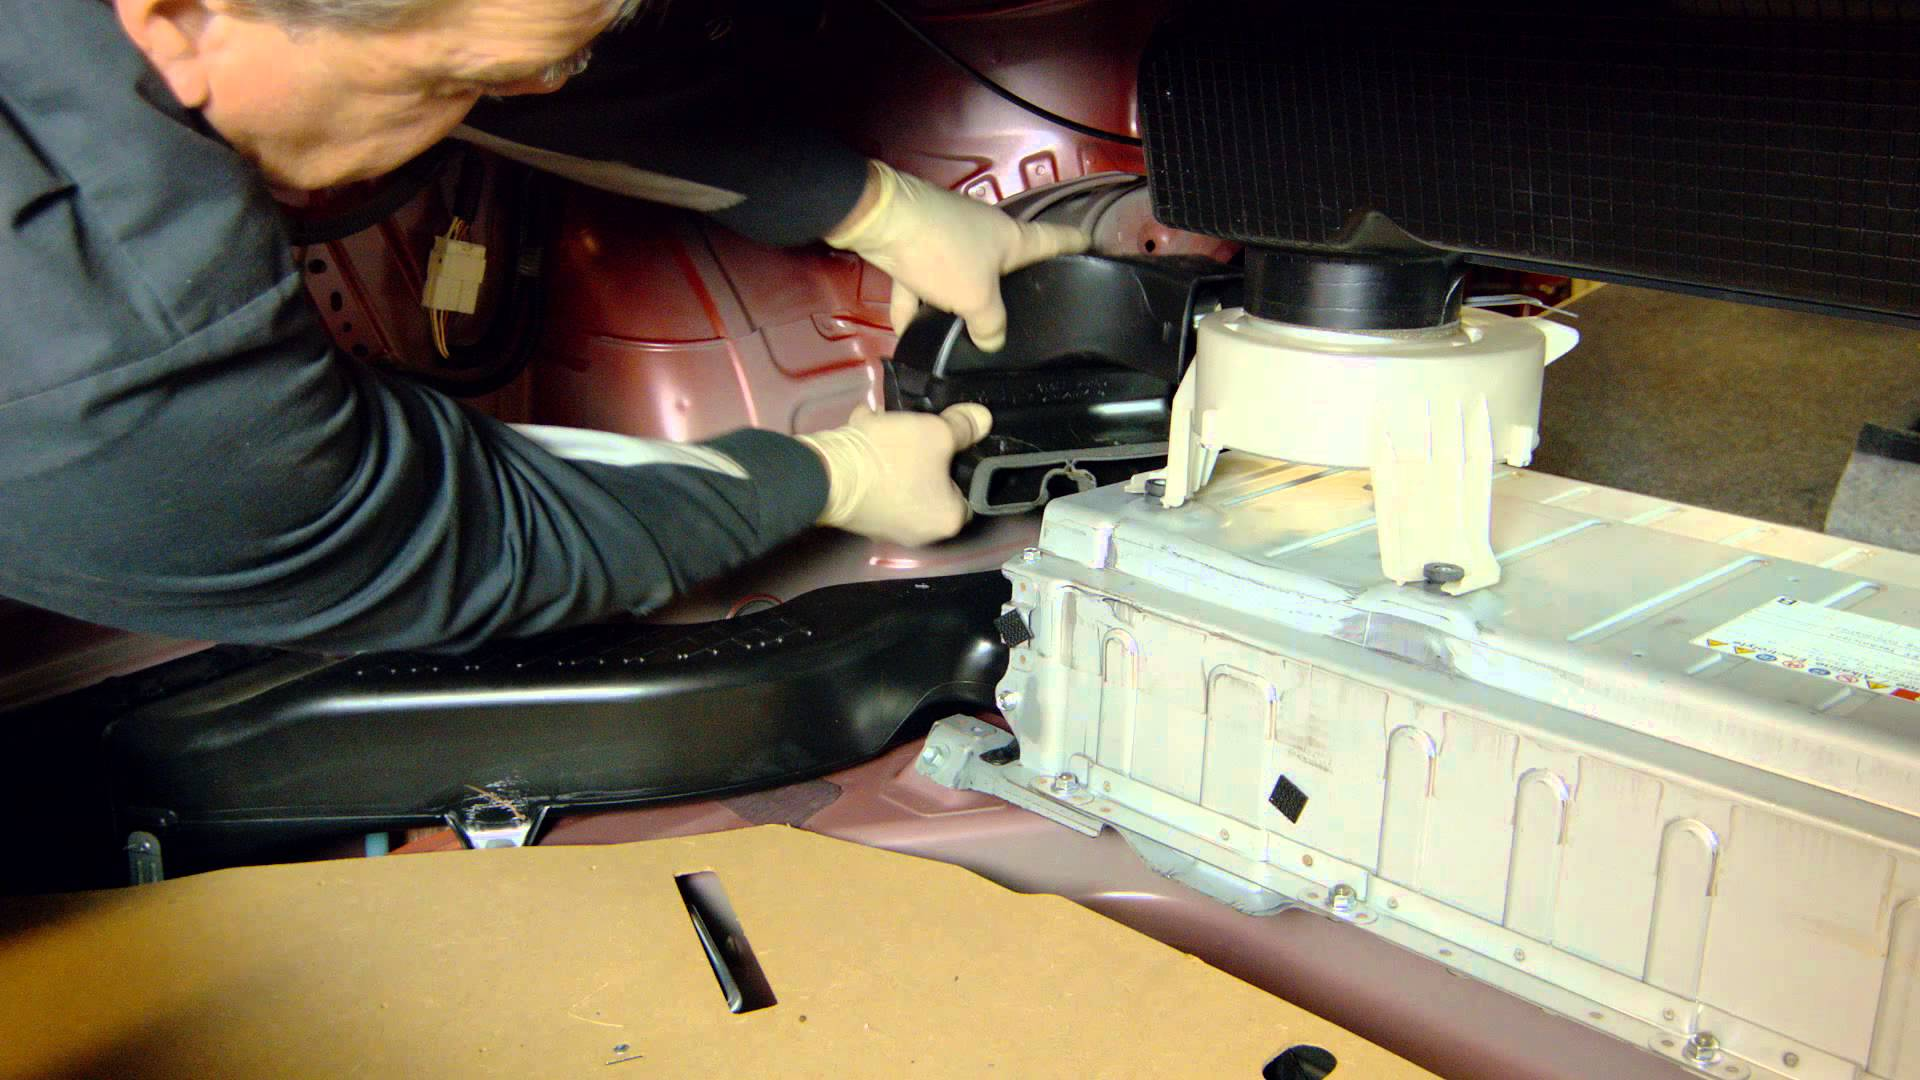 man fixes camry 39 s hybrid battery pack himself for 10 toyota wanted 4 456. Black Bedroom Furniture Sets. Home Design Ideas